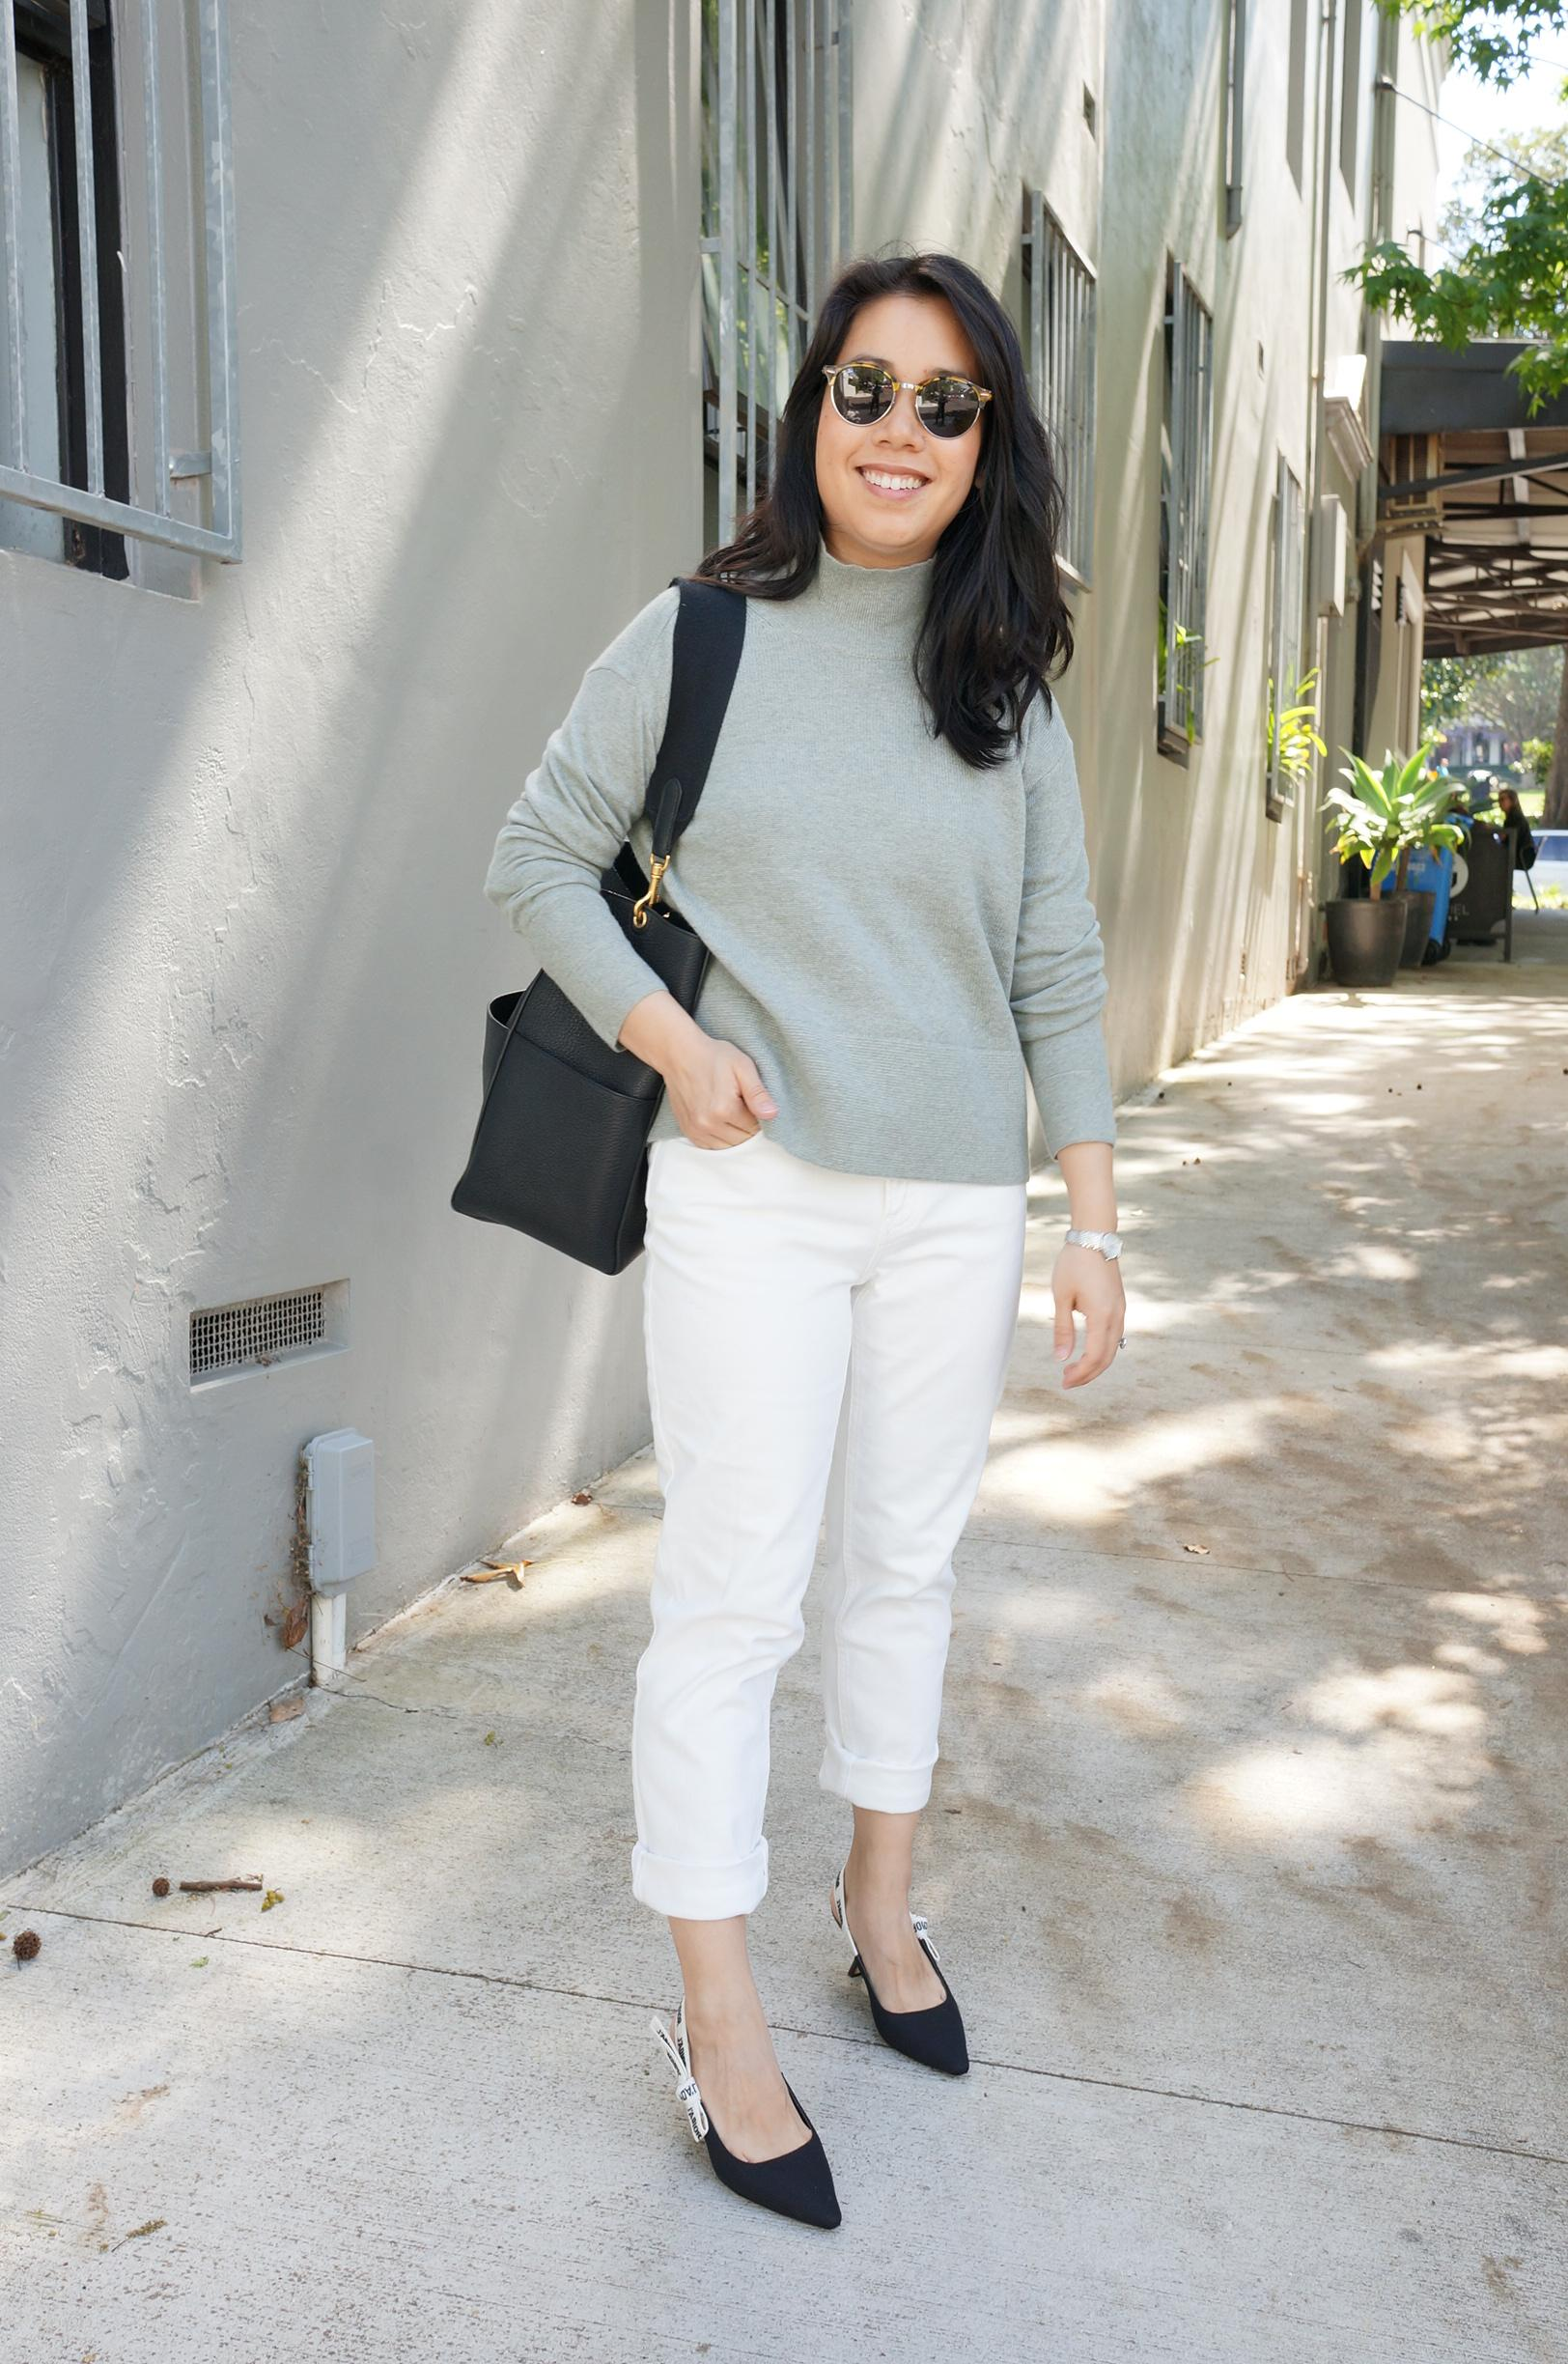 everlane cashmere turtleneck knit review featuring outfit styled with white jeans, celine sangle bag and j'adior slingbacks